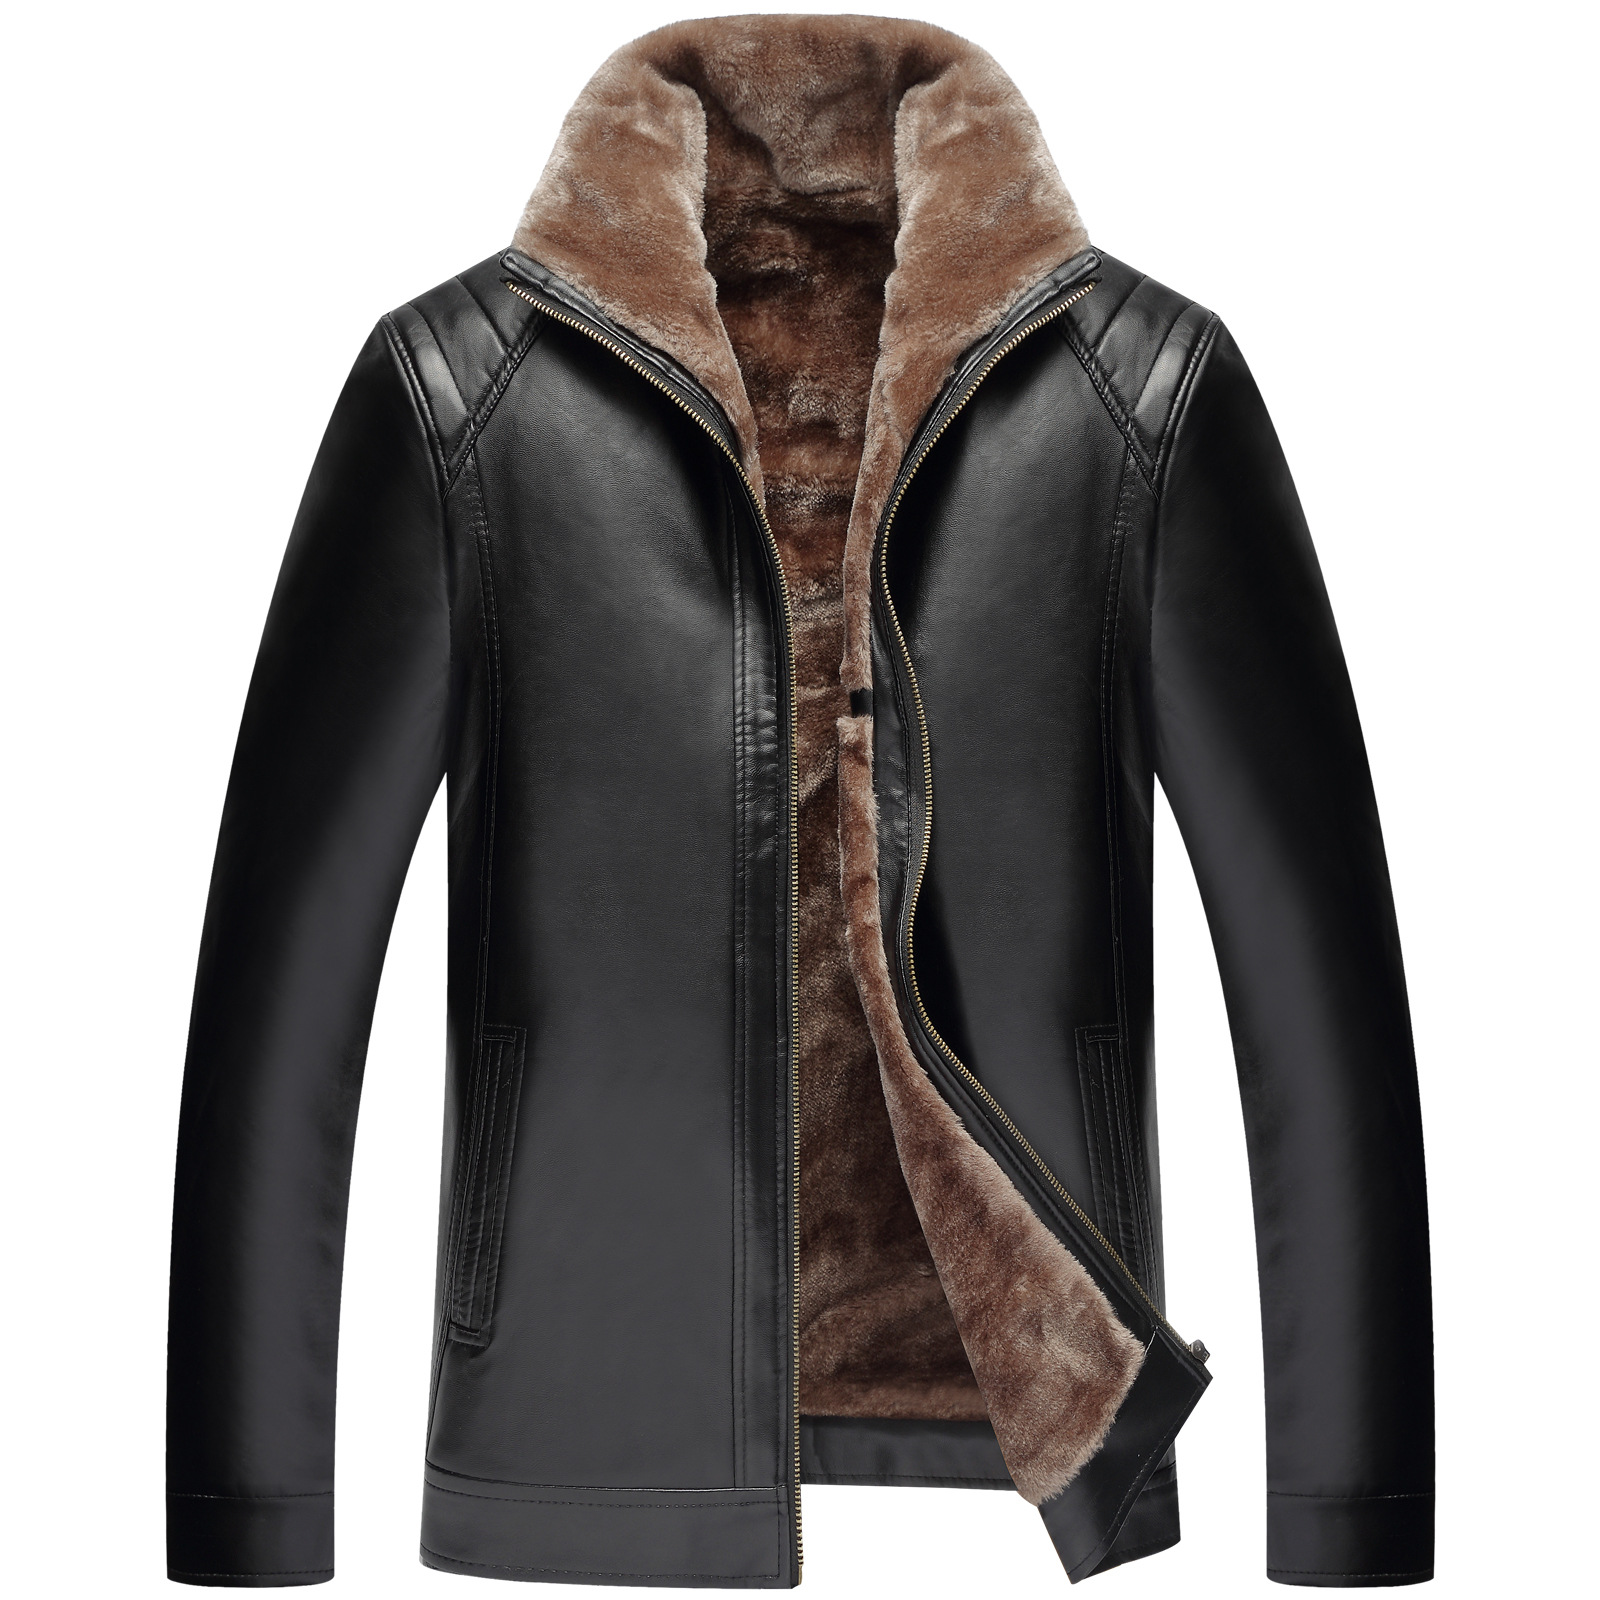 New Style Middle-aged Leather Coat Men's Fur MEN'S Leather Coat Stand Collar Brushed And Thick MEN'S Leather Jacket PU Leather